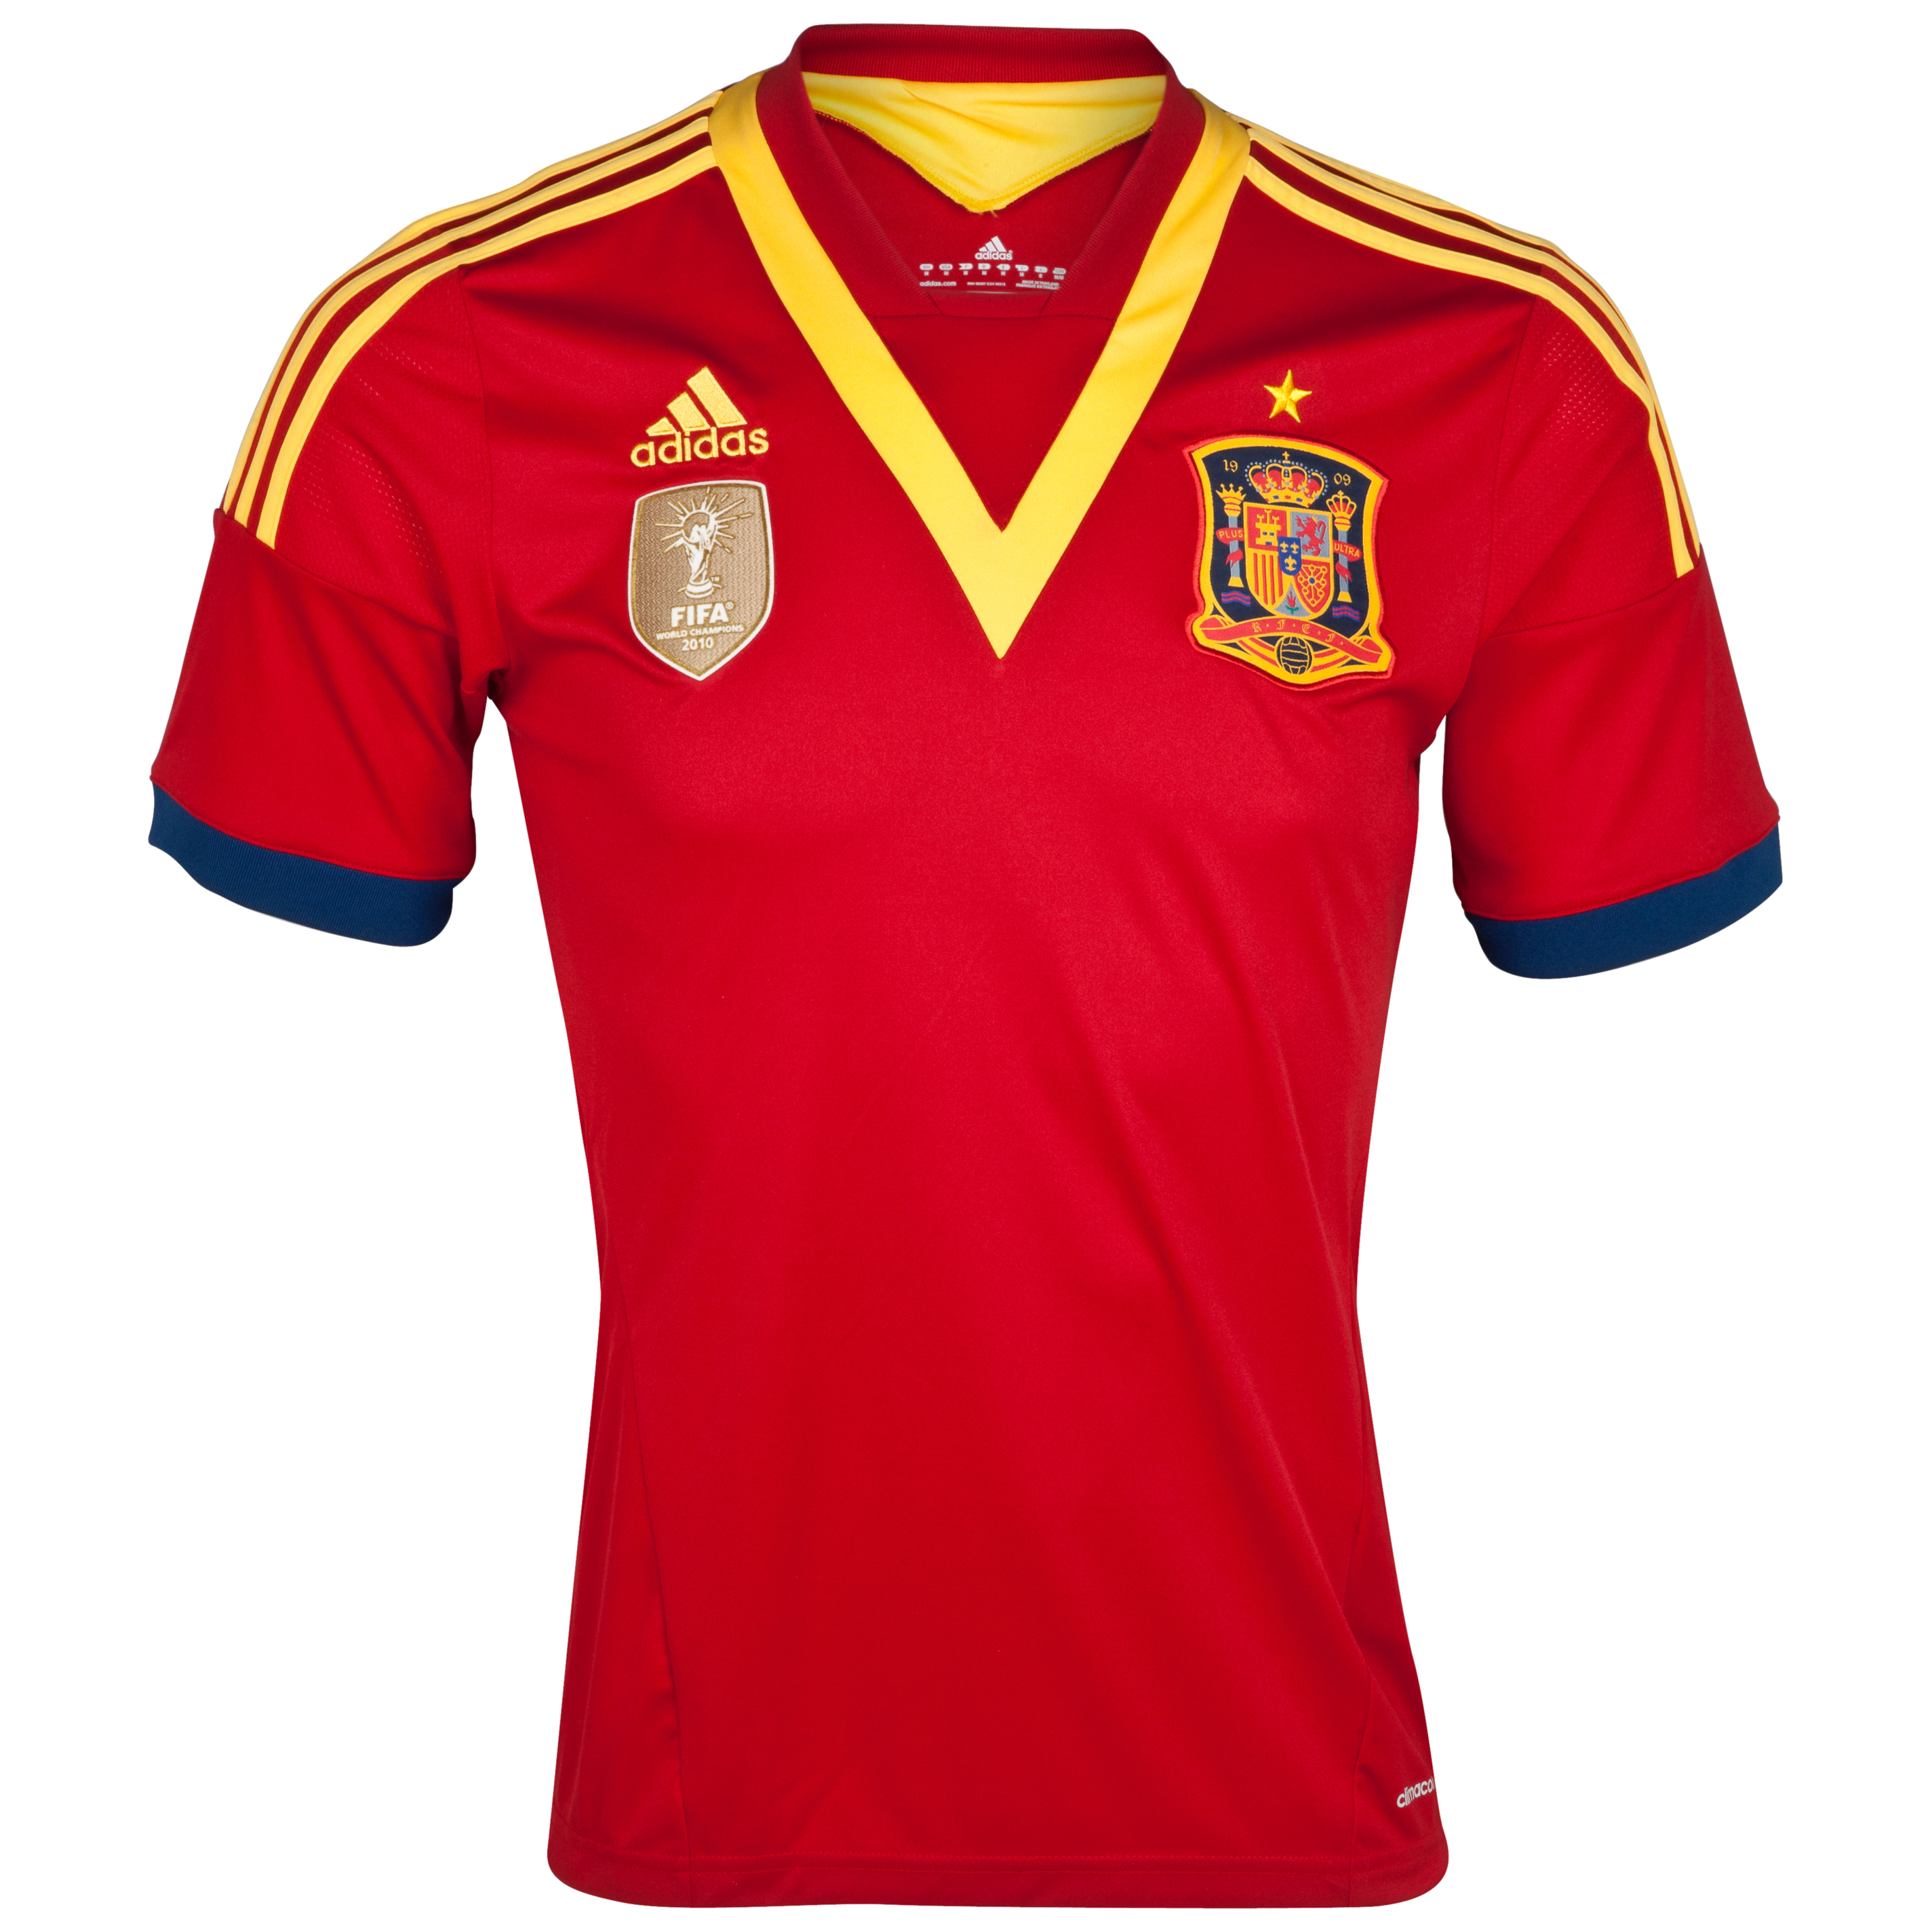 Spain Home Shirt 2013 - Youths